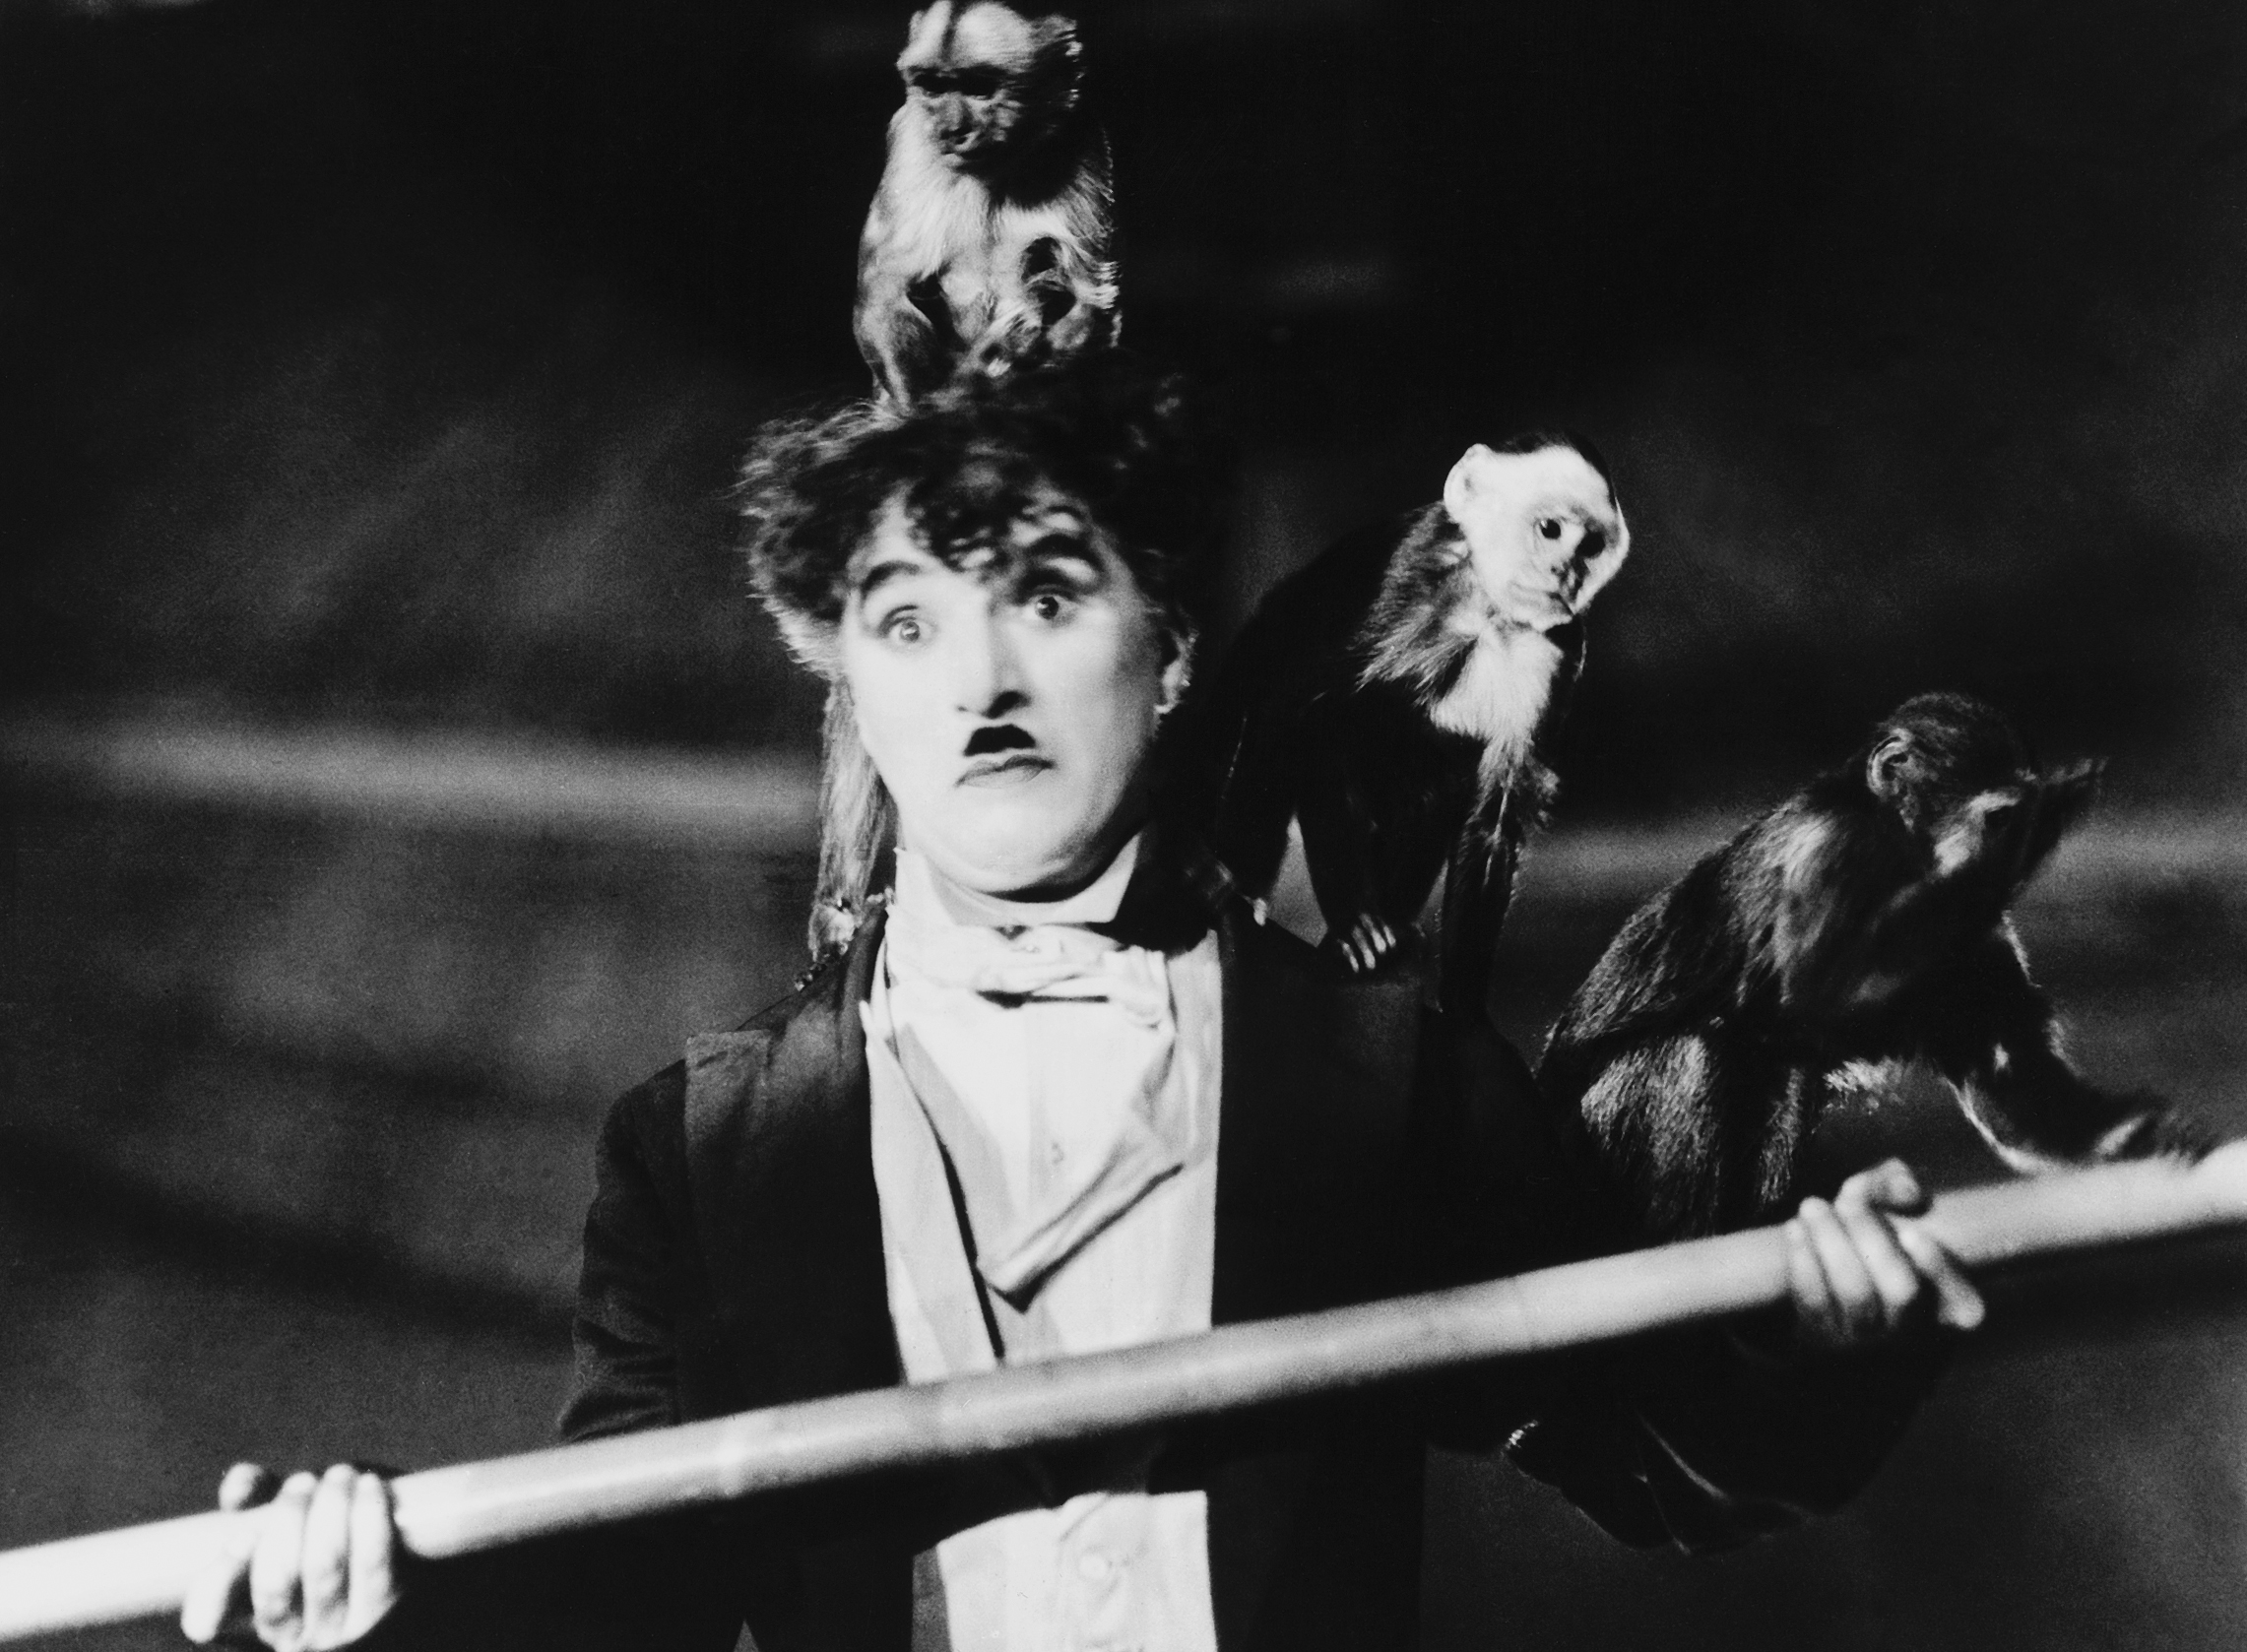 Charlie Chaplin in 'The Circus'